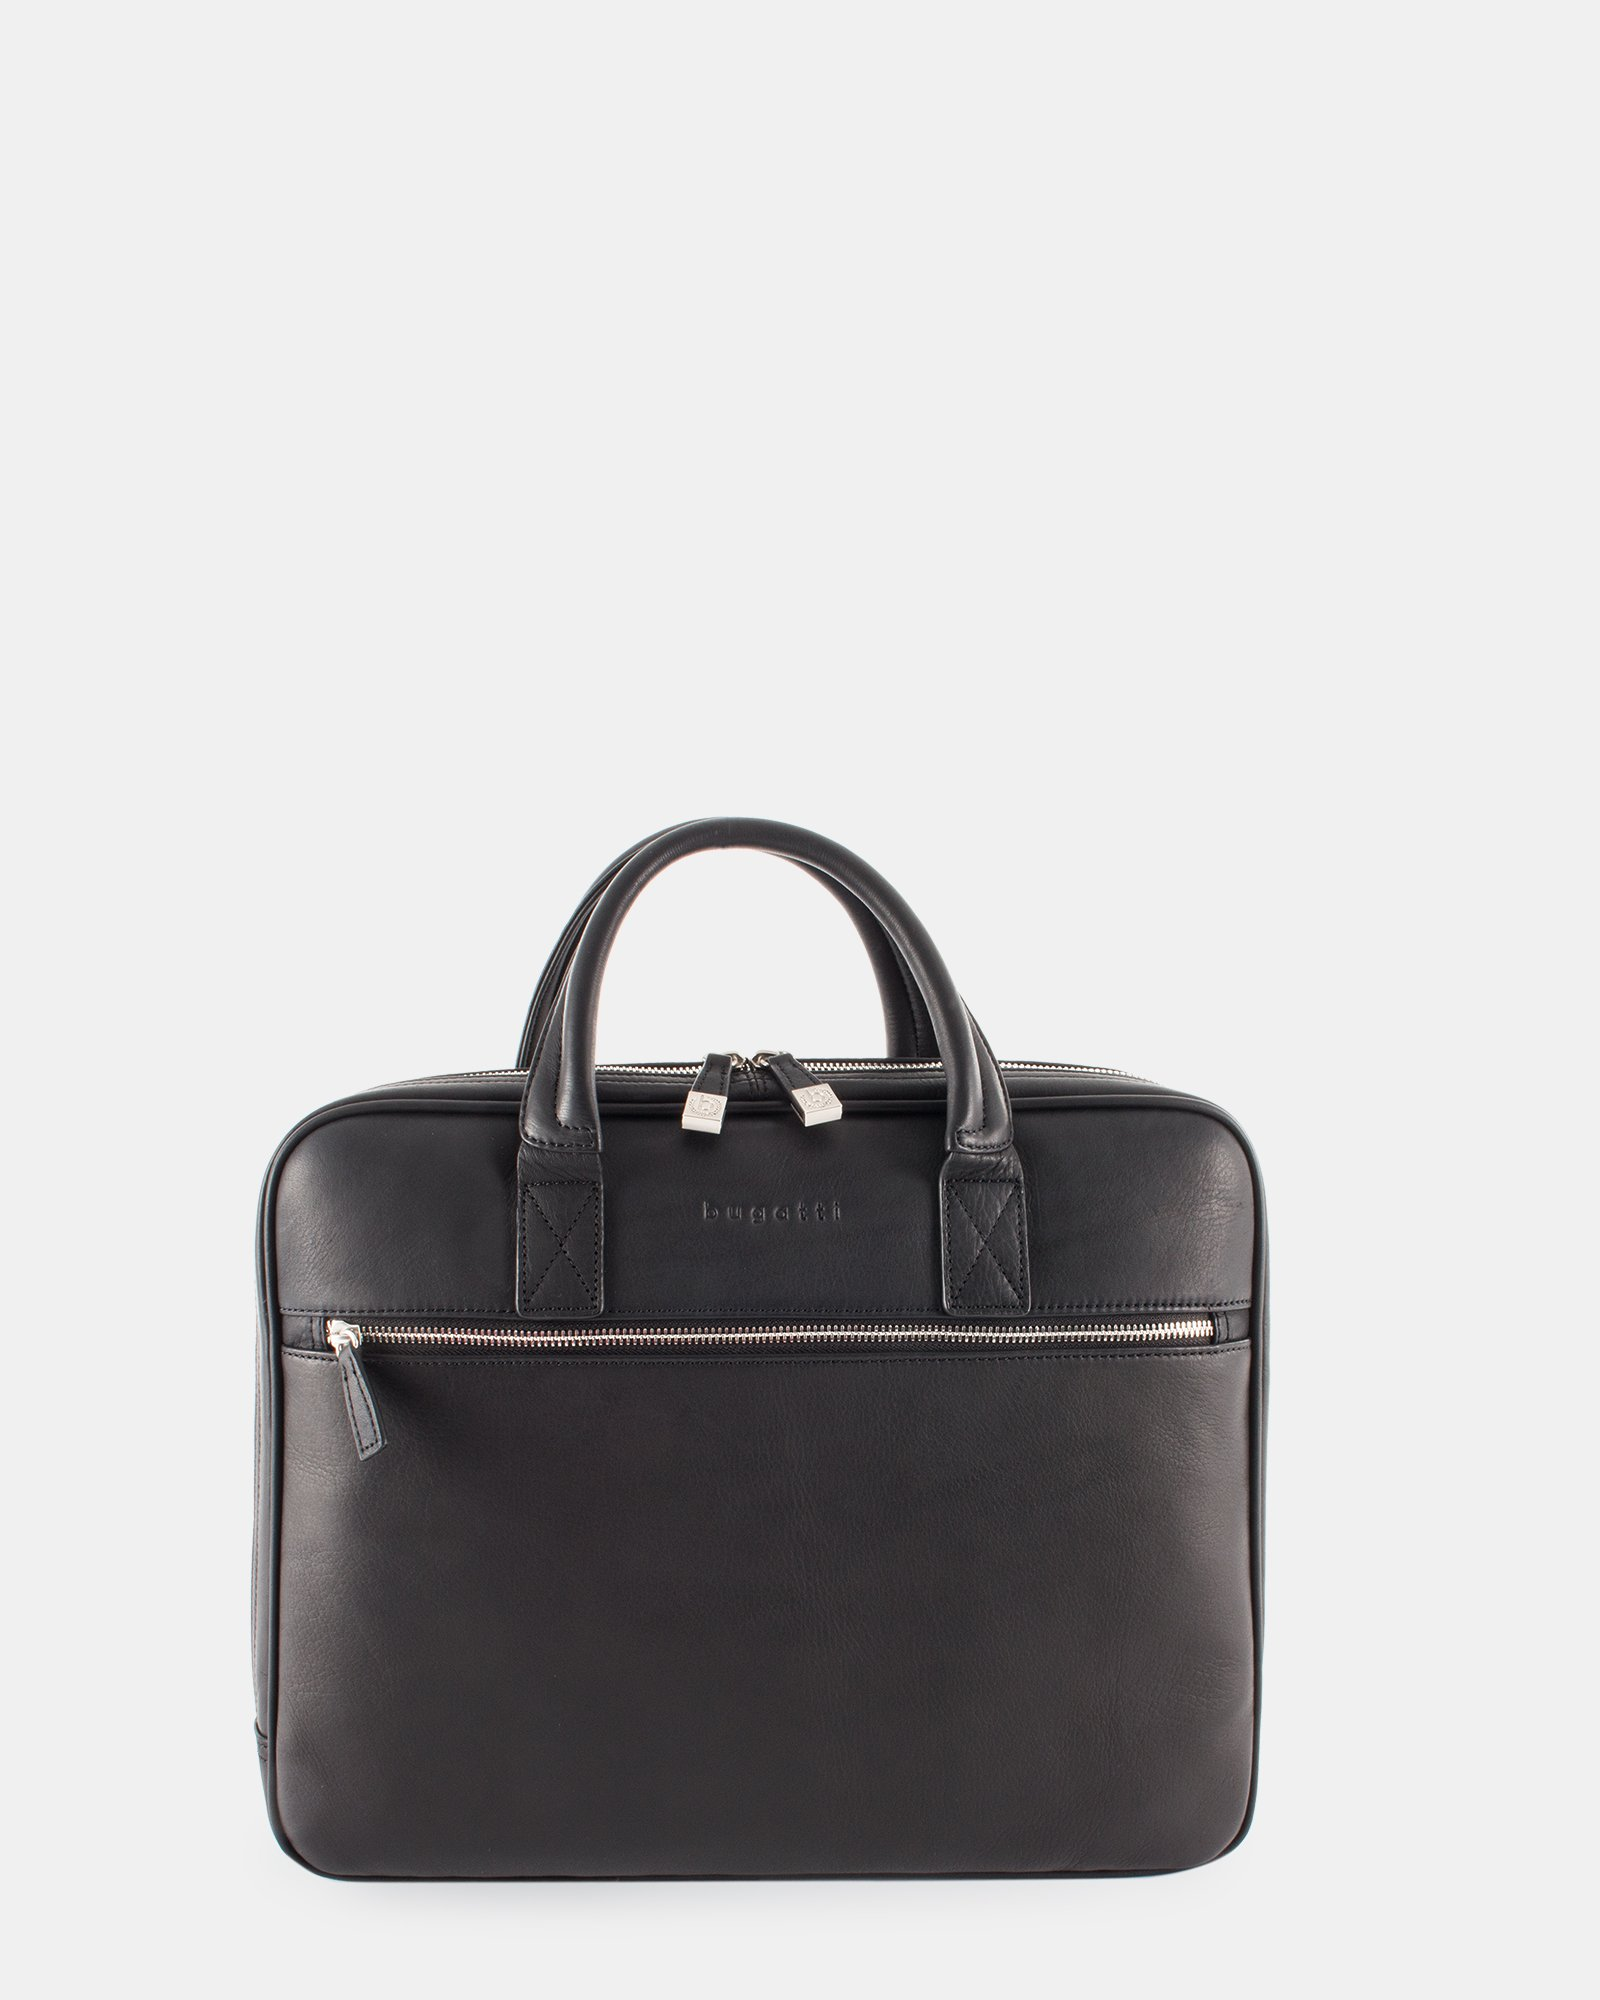 """Sartoria II - Functional leather briefcase for 15.6"""" laptop with Double top handles - Black   - Bugatti - Zoom"""